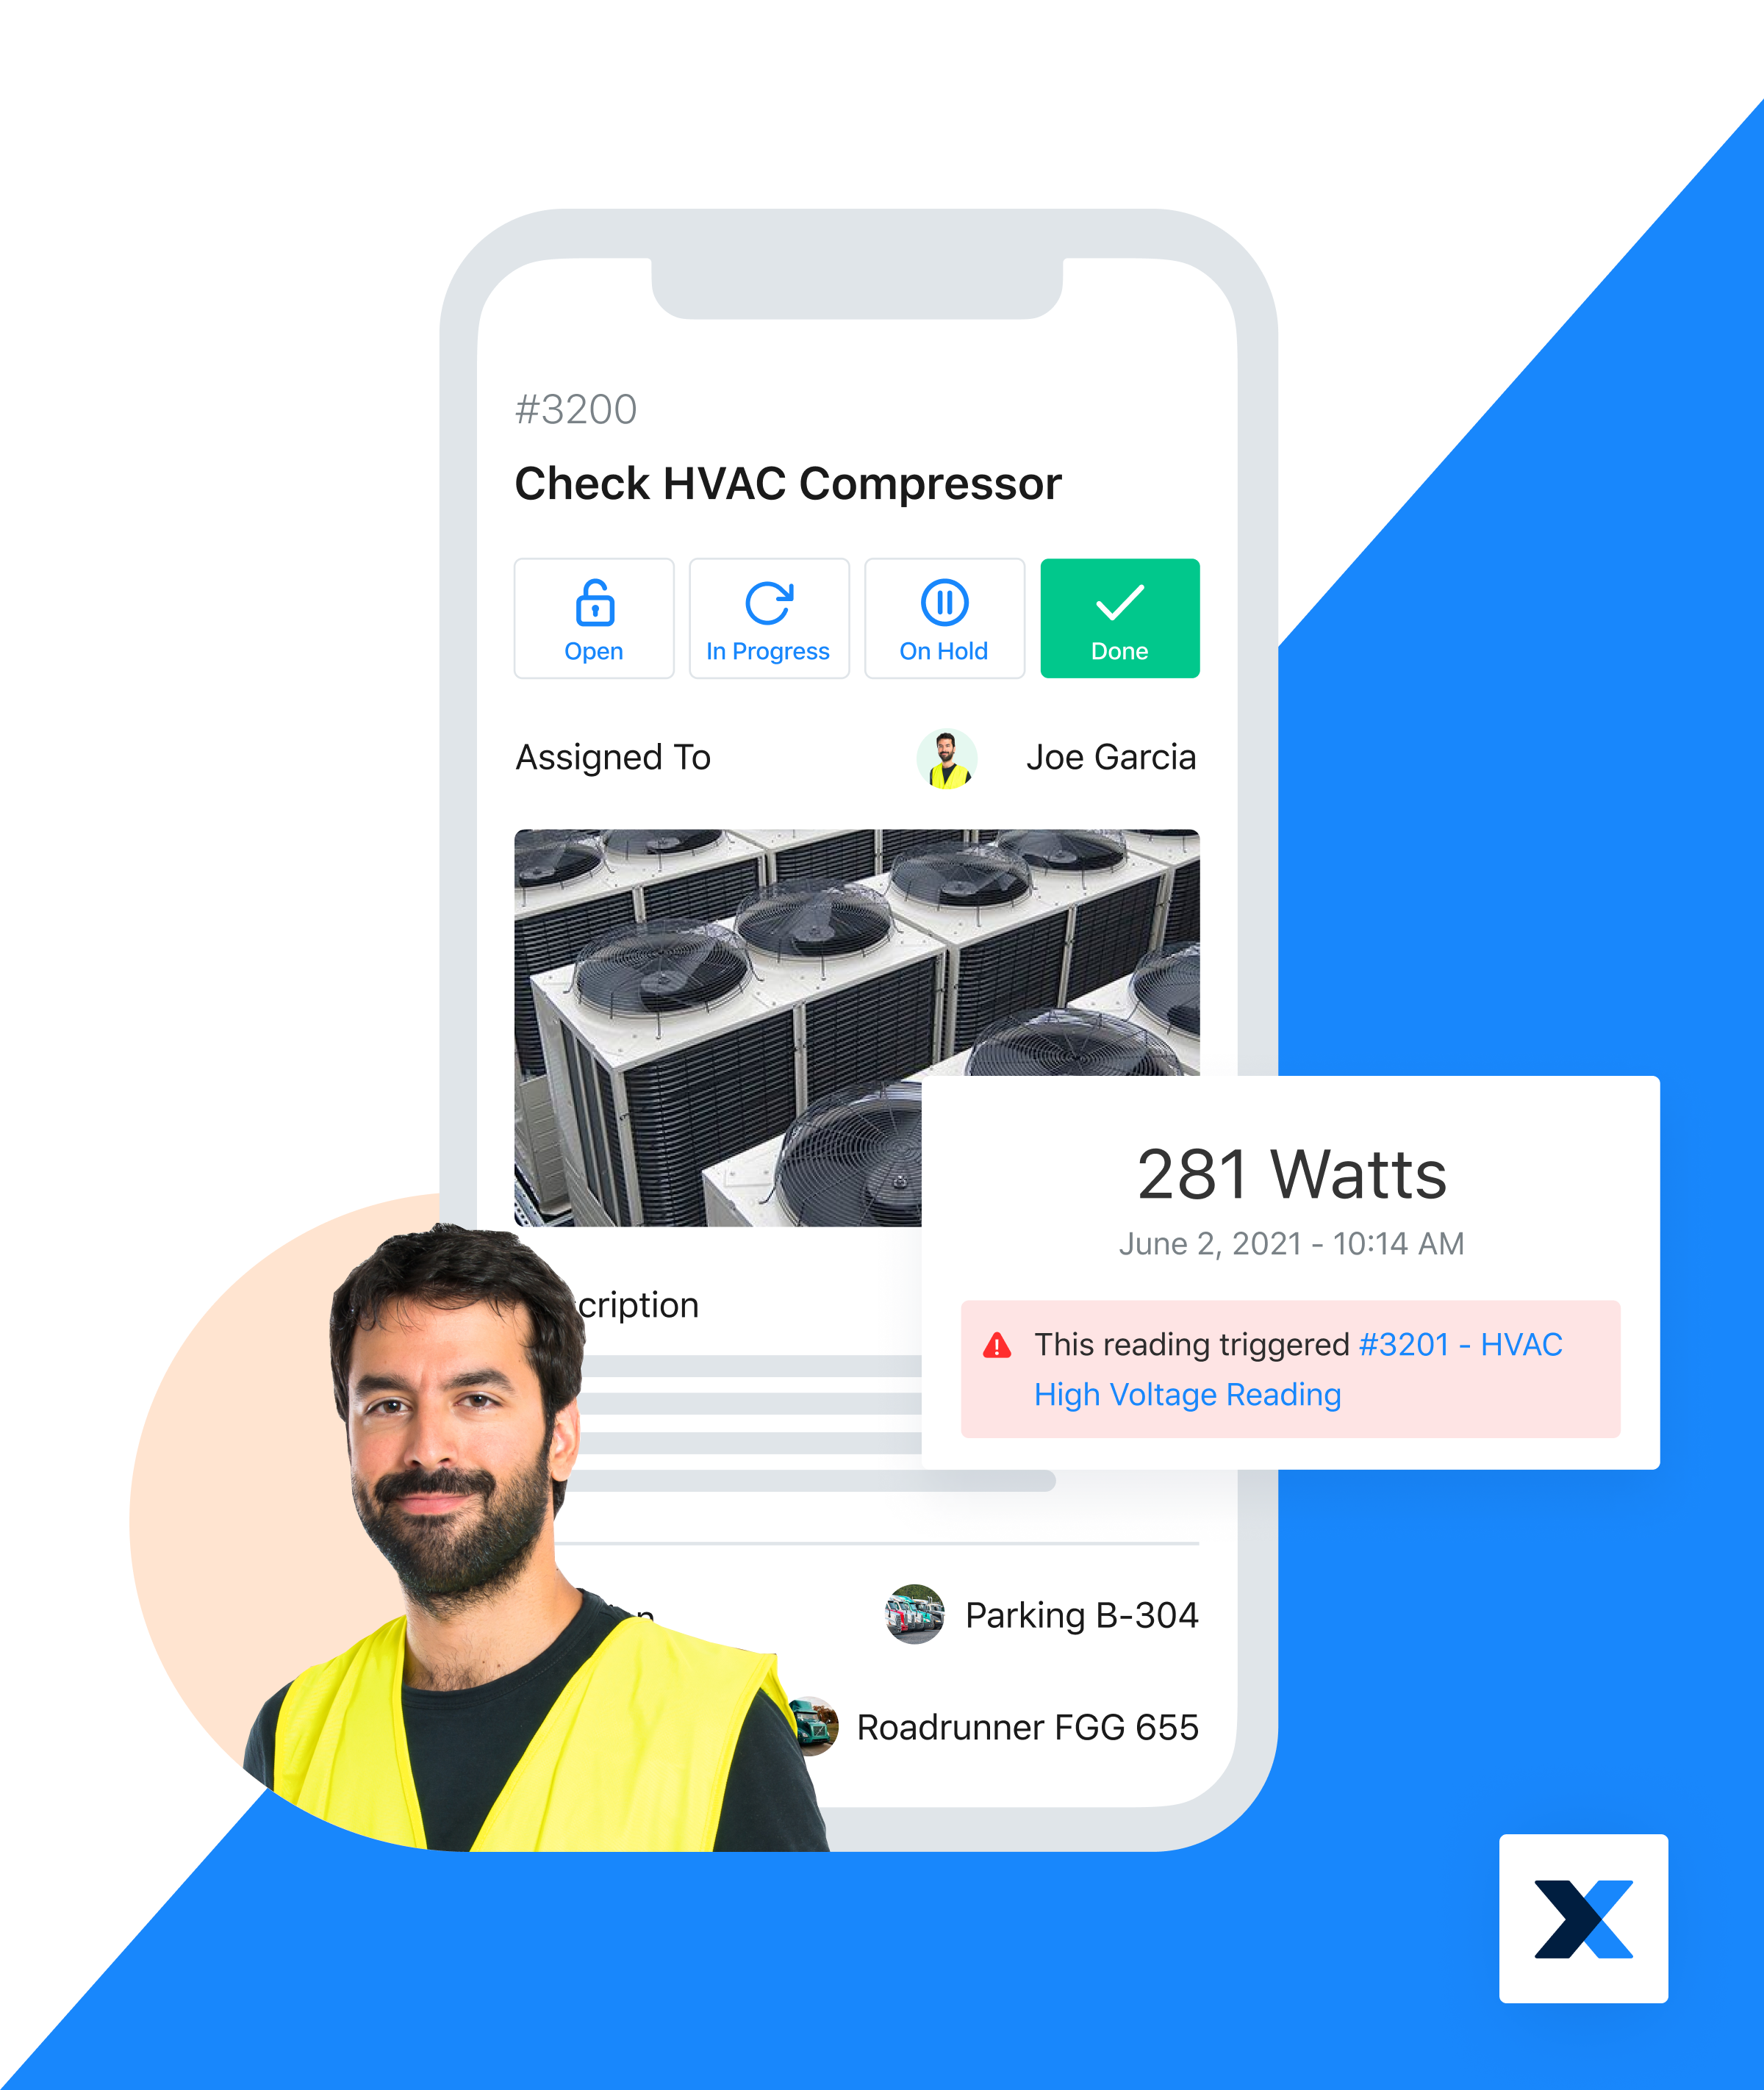 MaintainX Software - Manage IoT sensors and Meter Readings with MaintainX